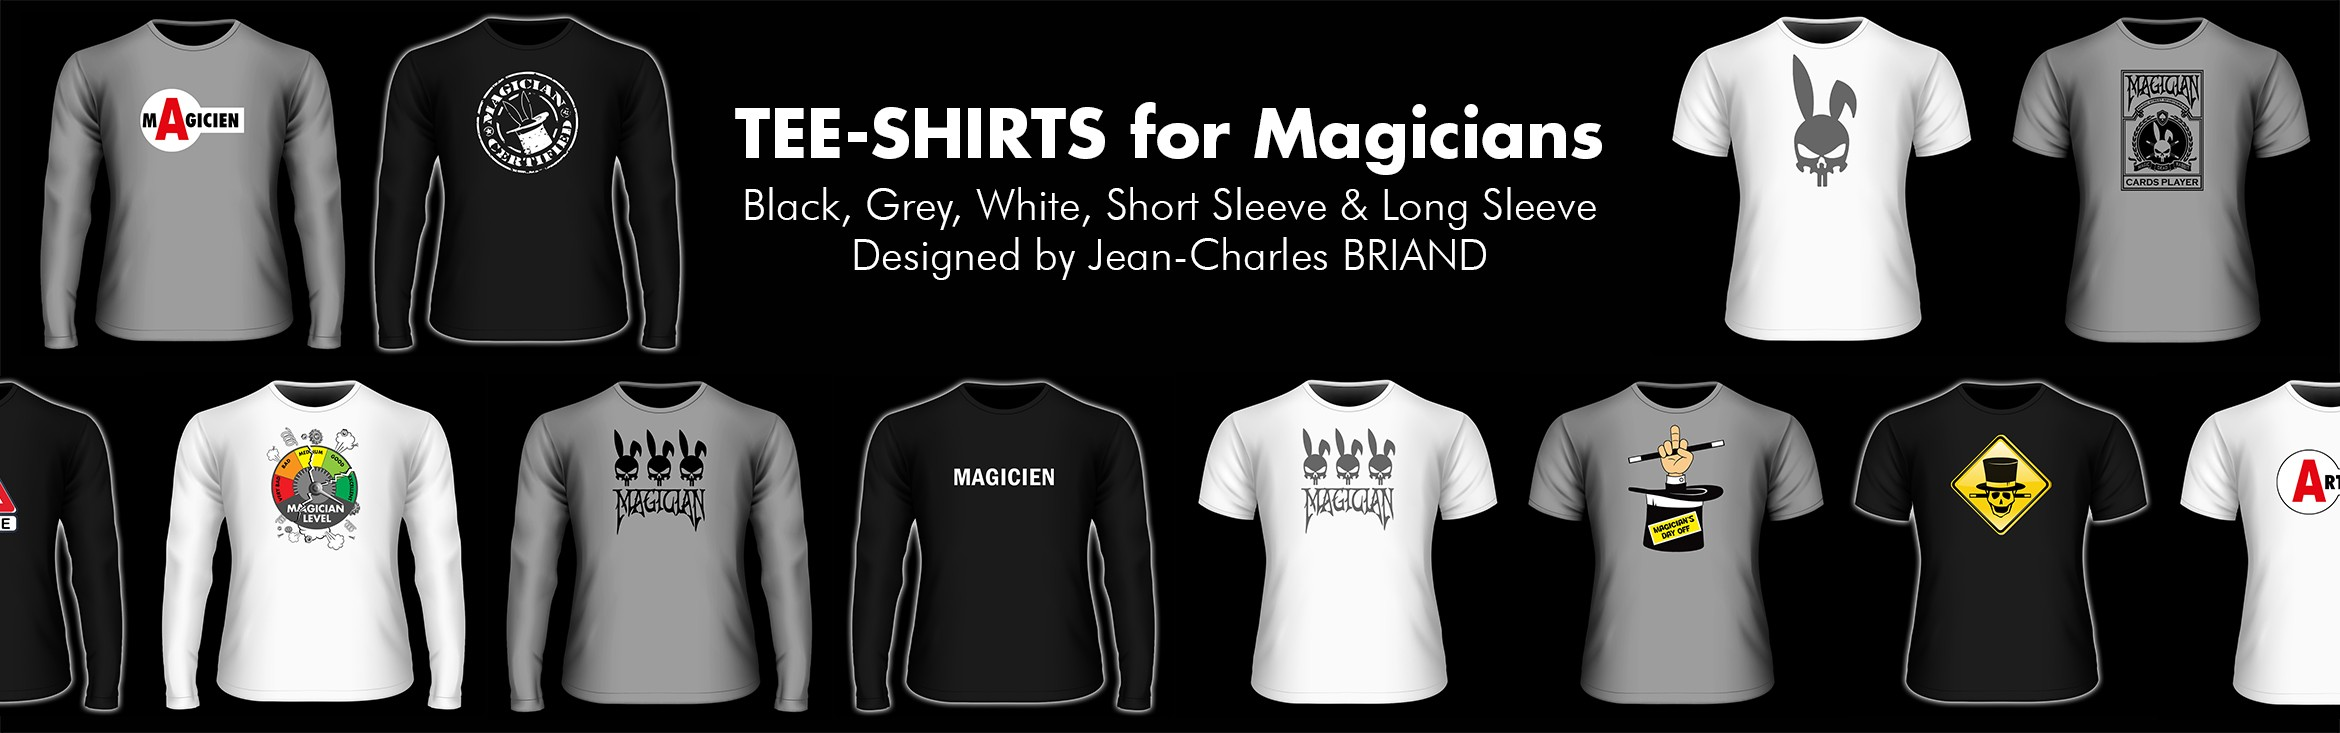 tee-shirt-magician-black-grey-white-long-sleeve-short-sleeve-jean-charles-briand-madjicshop